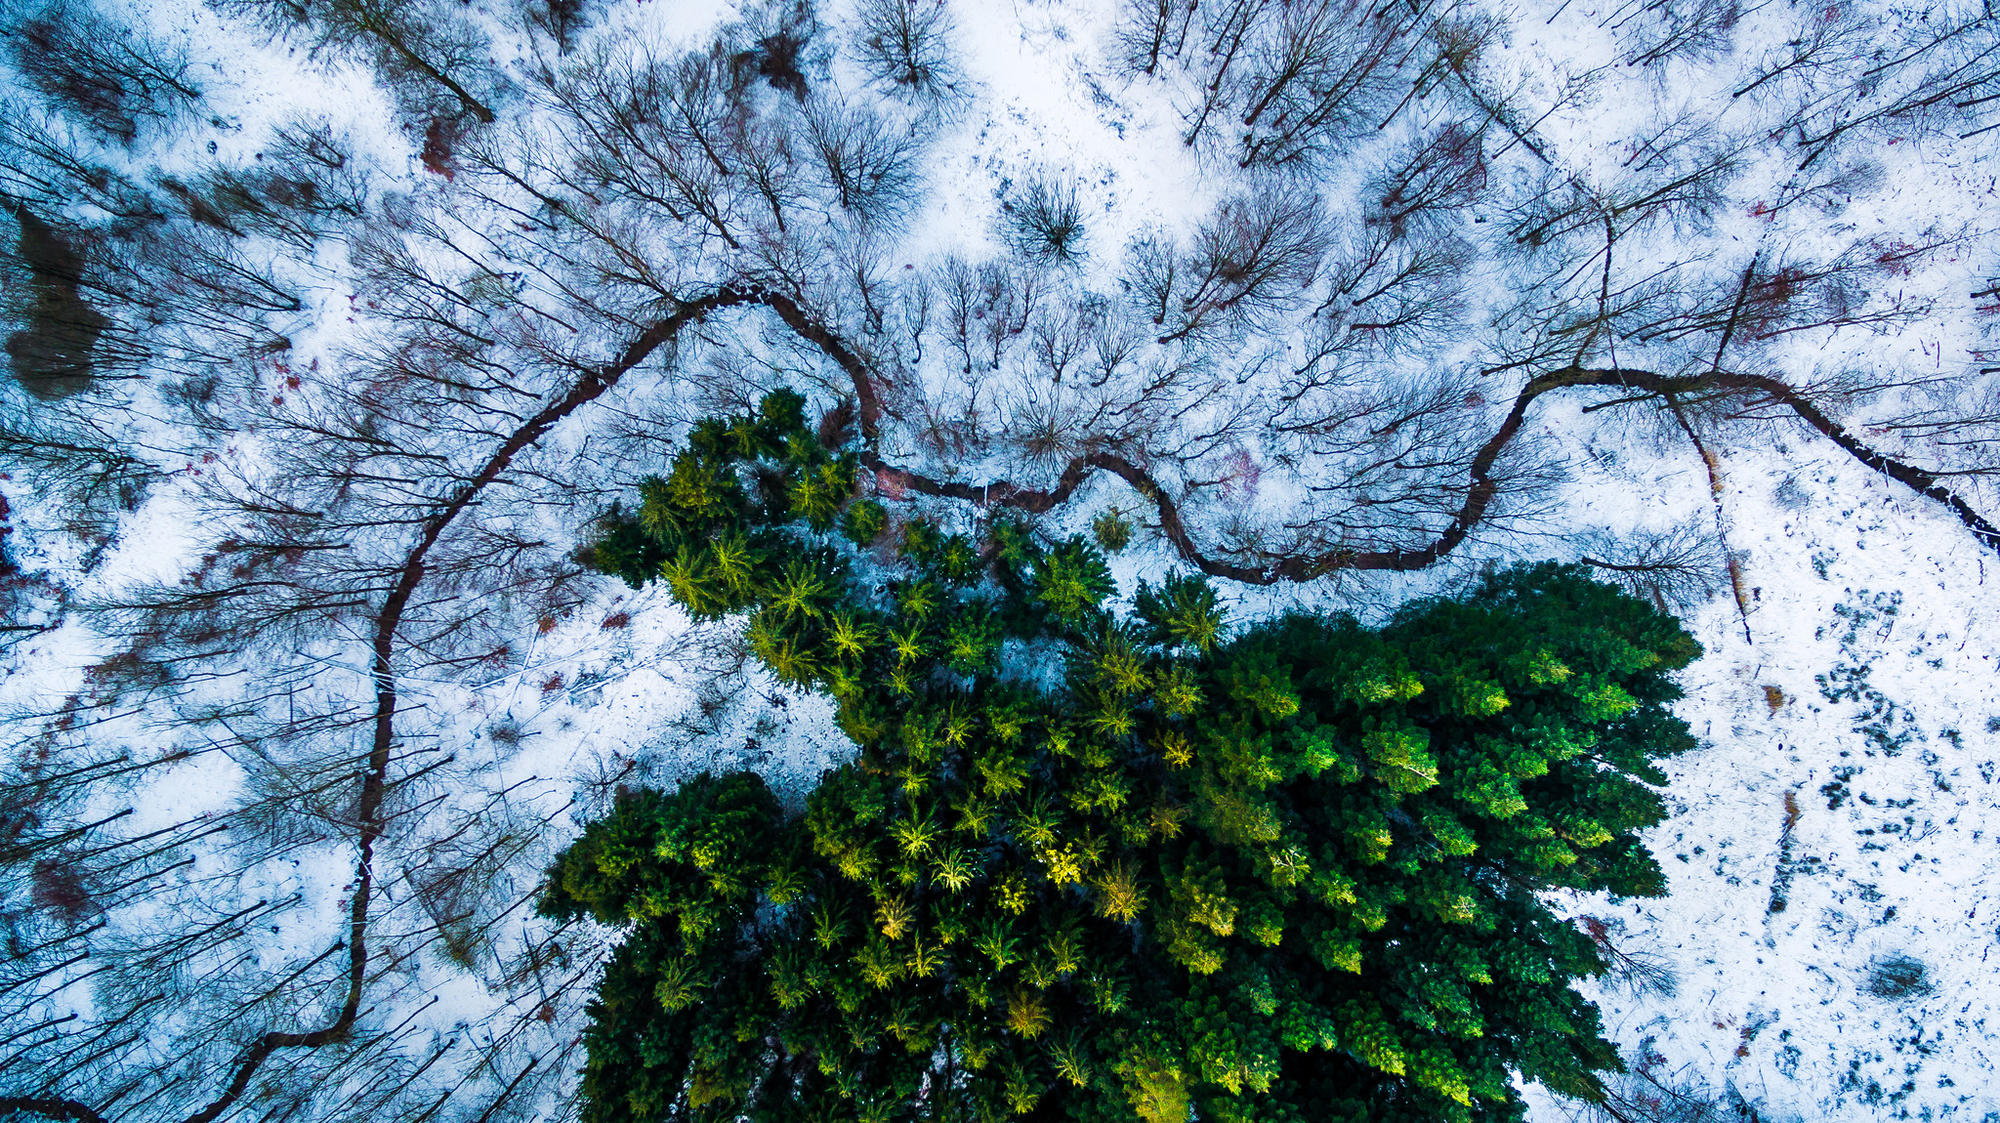 Michael B. Rasmussen's image of the Kalby Ris region of Denmark took first place in the nature/wildlife category.